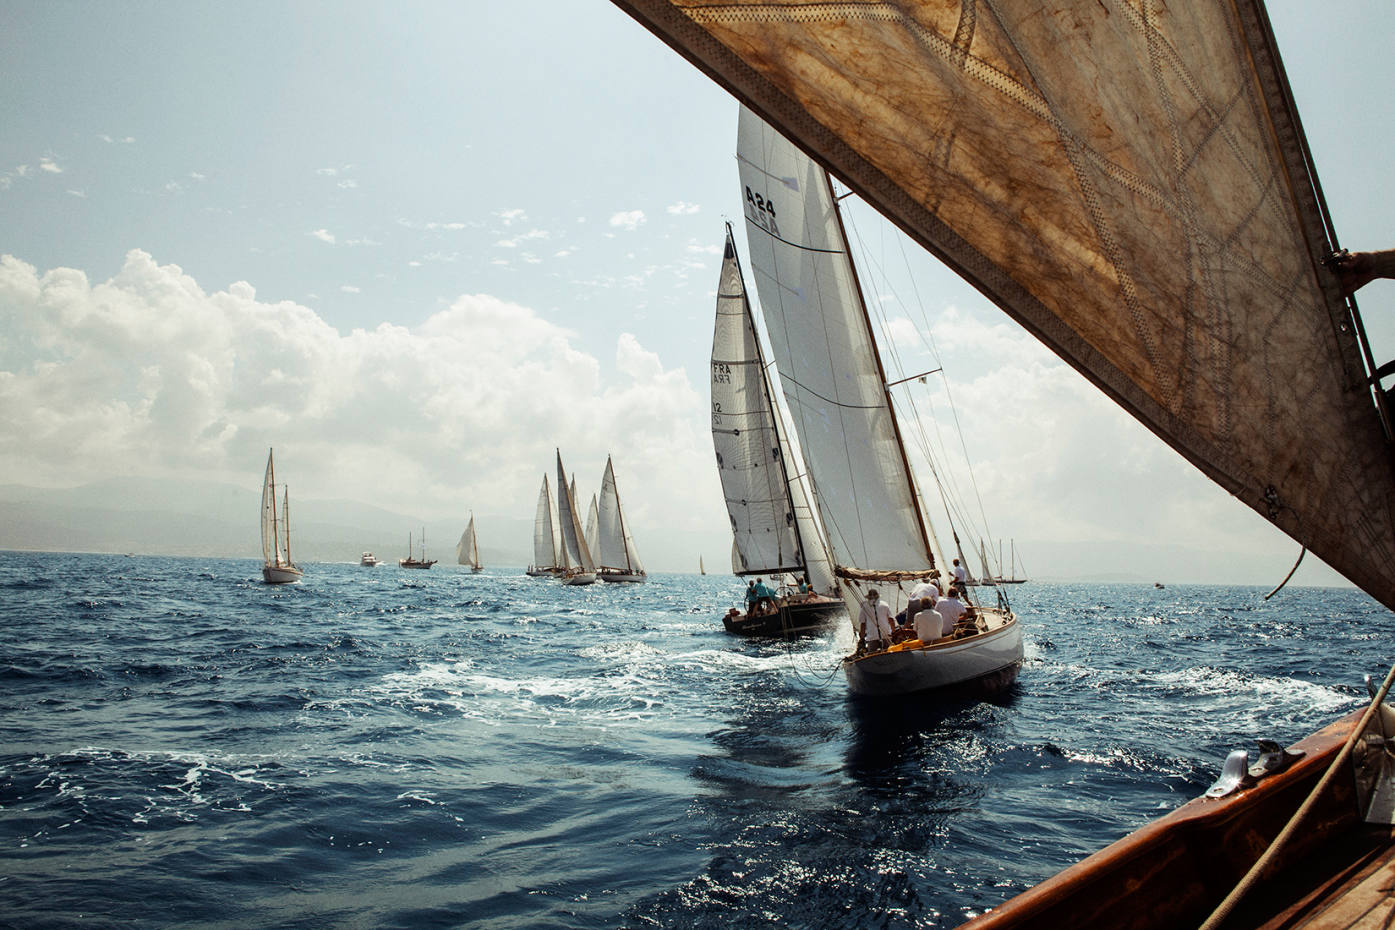 This year's Corsica Classic will feature competitors from countries including France, Monaco, Switzerland, Spain, England and the US